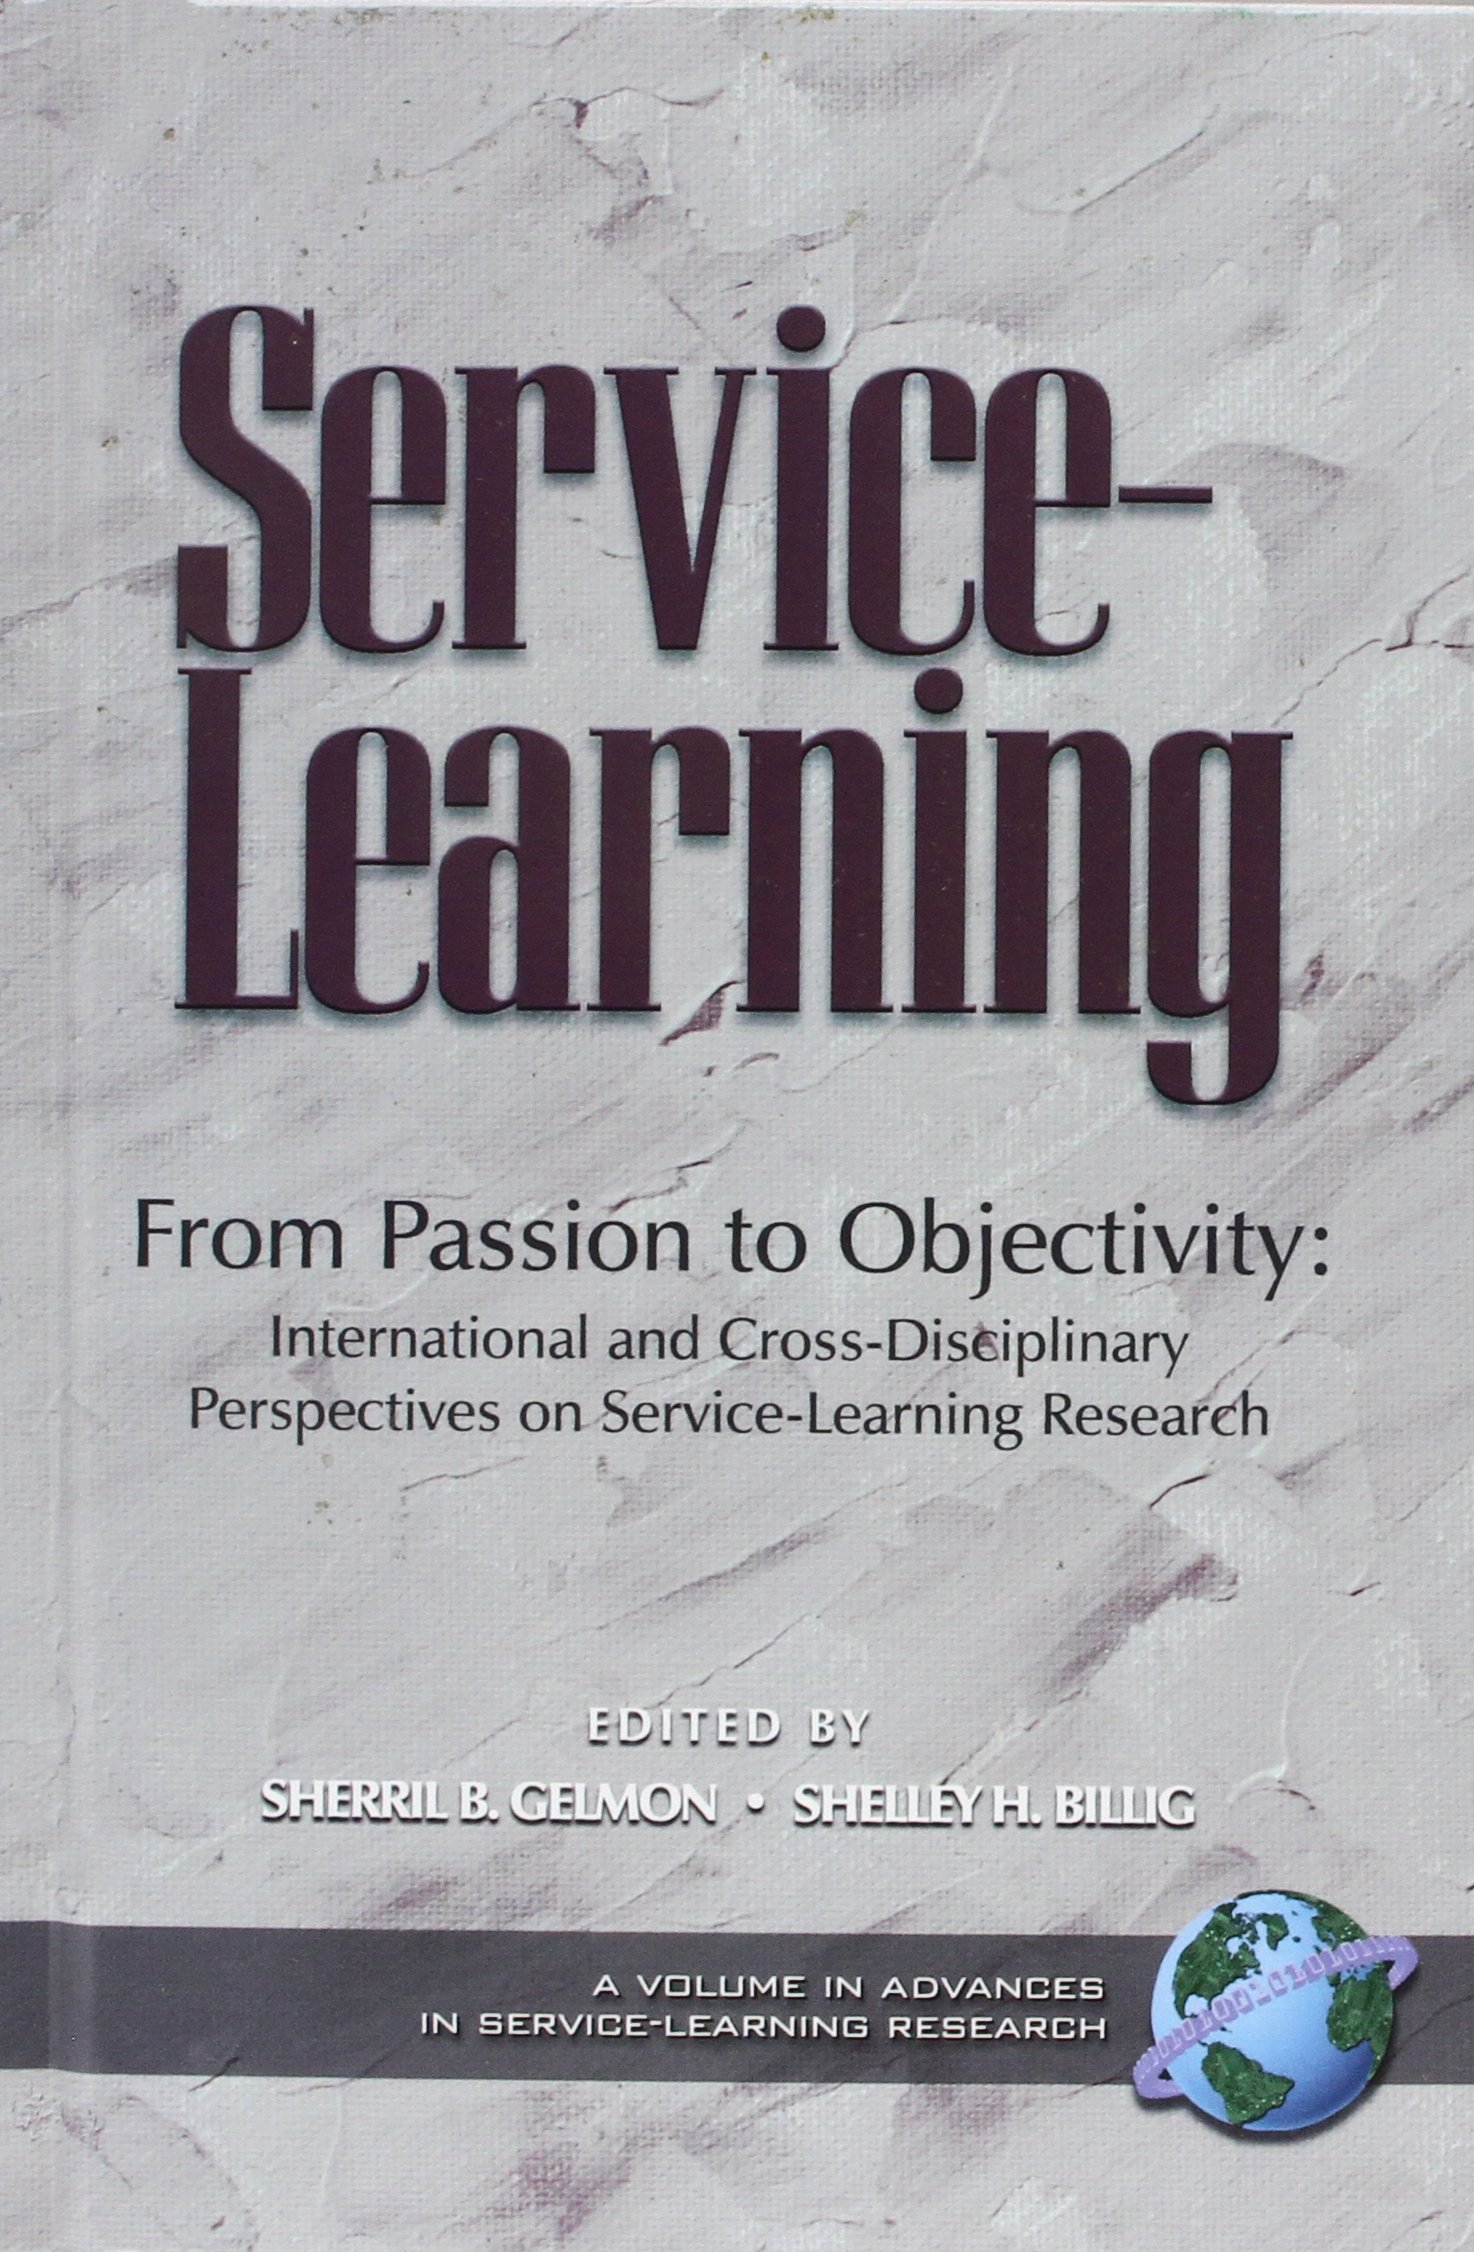 From Passion to Objectivity: International and Cross-Disciplinary Perspectives on Service-Learning Research (Hc) (Advances in Service-Learning Research)